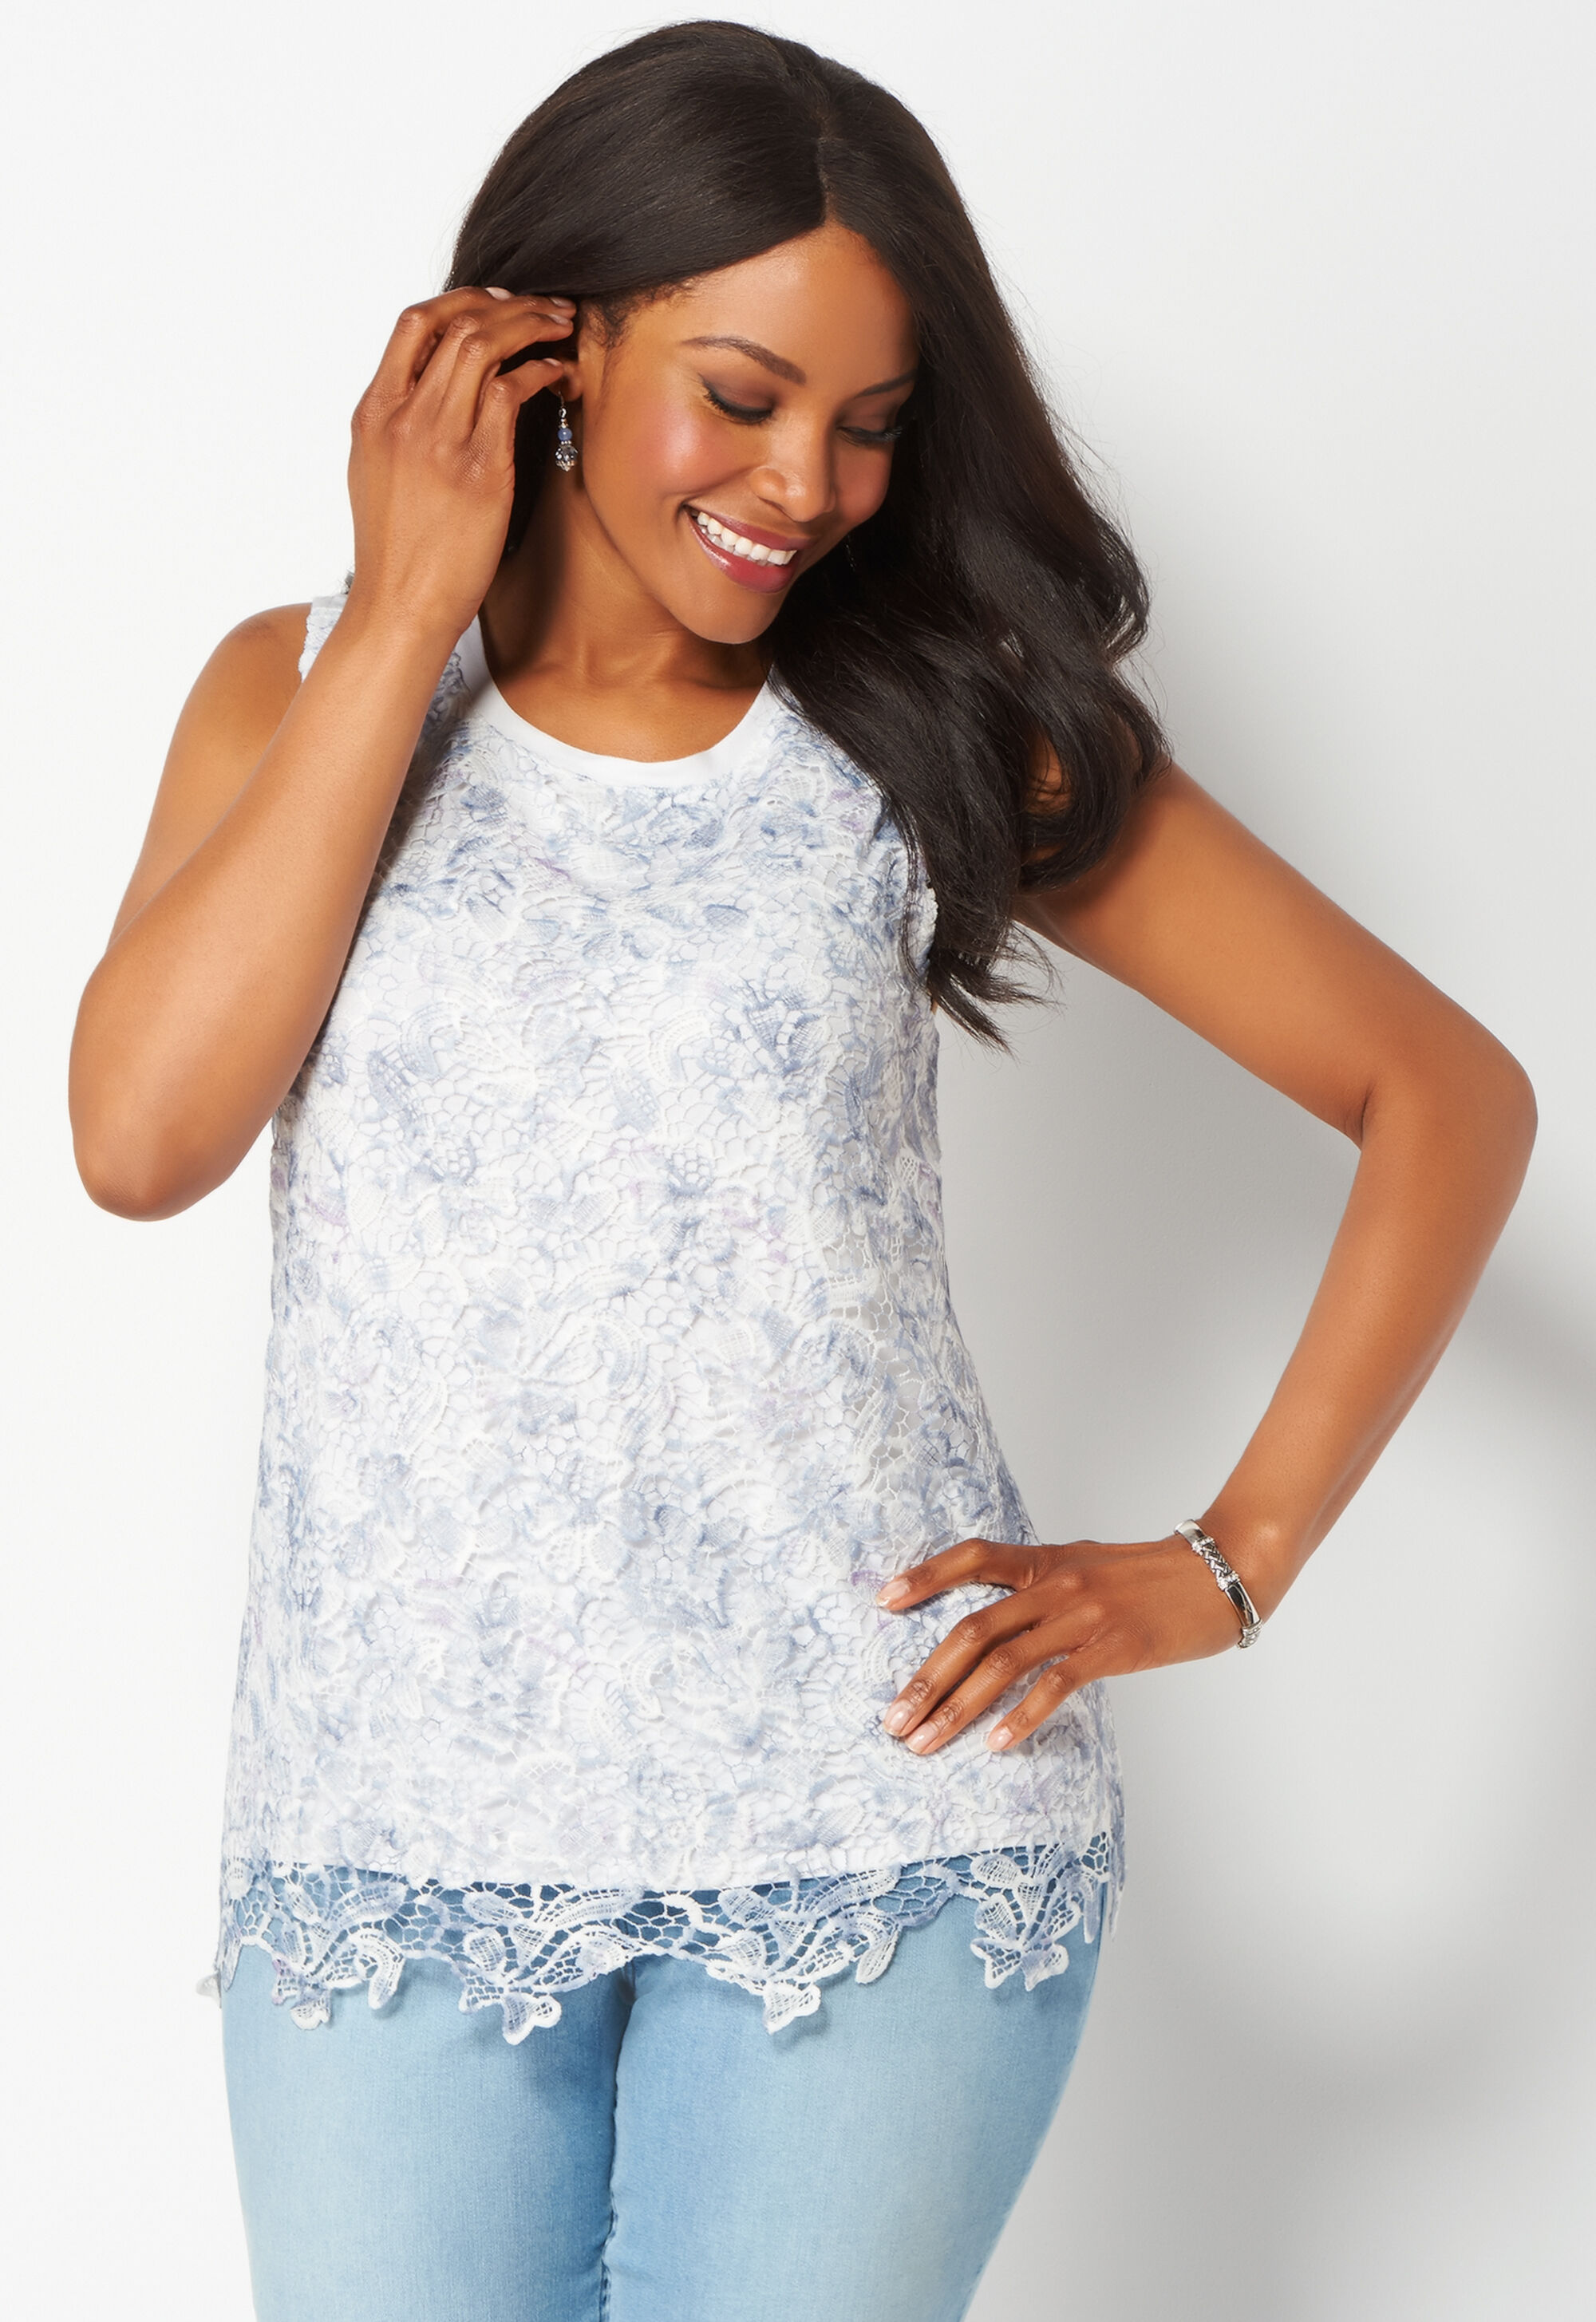 Plus Size Women's Clothing | Christopher & Banks®